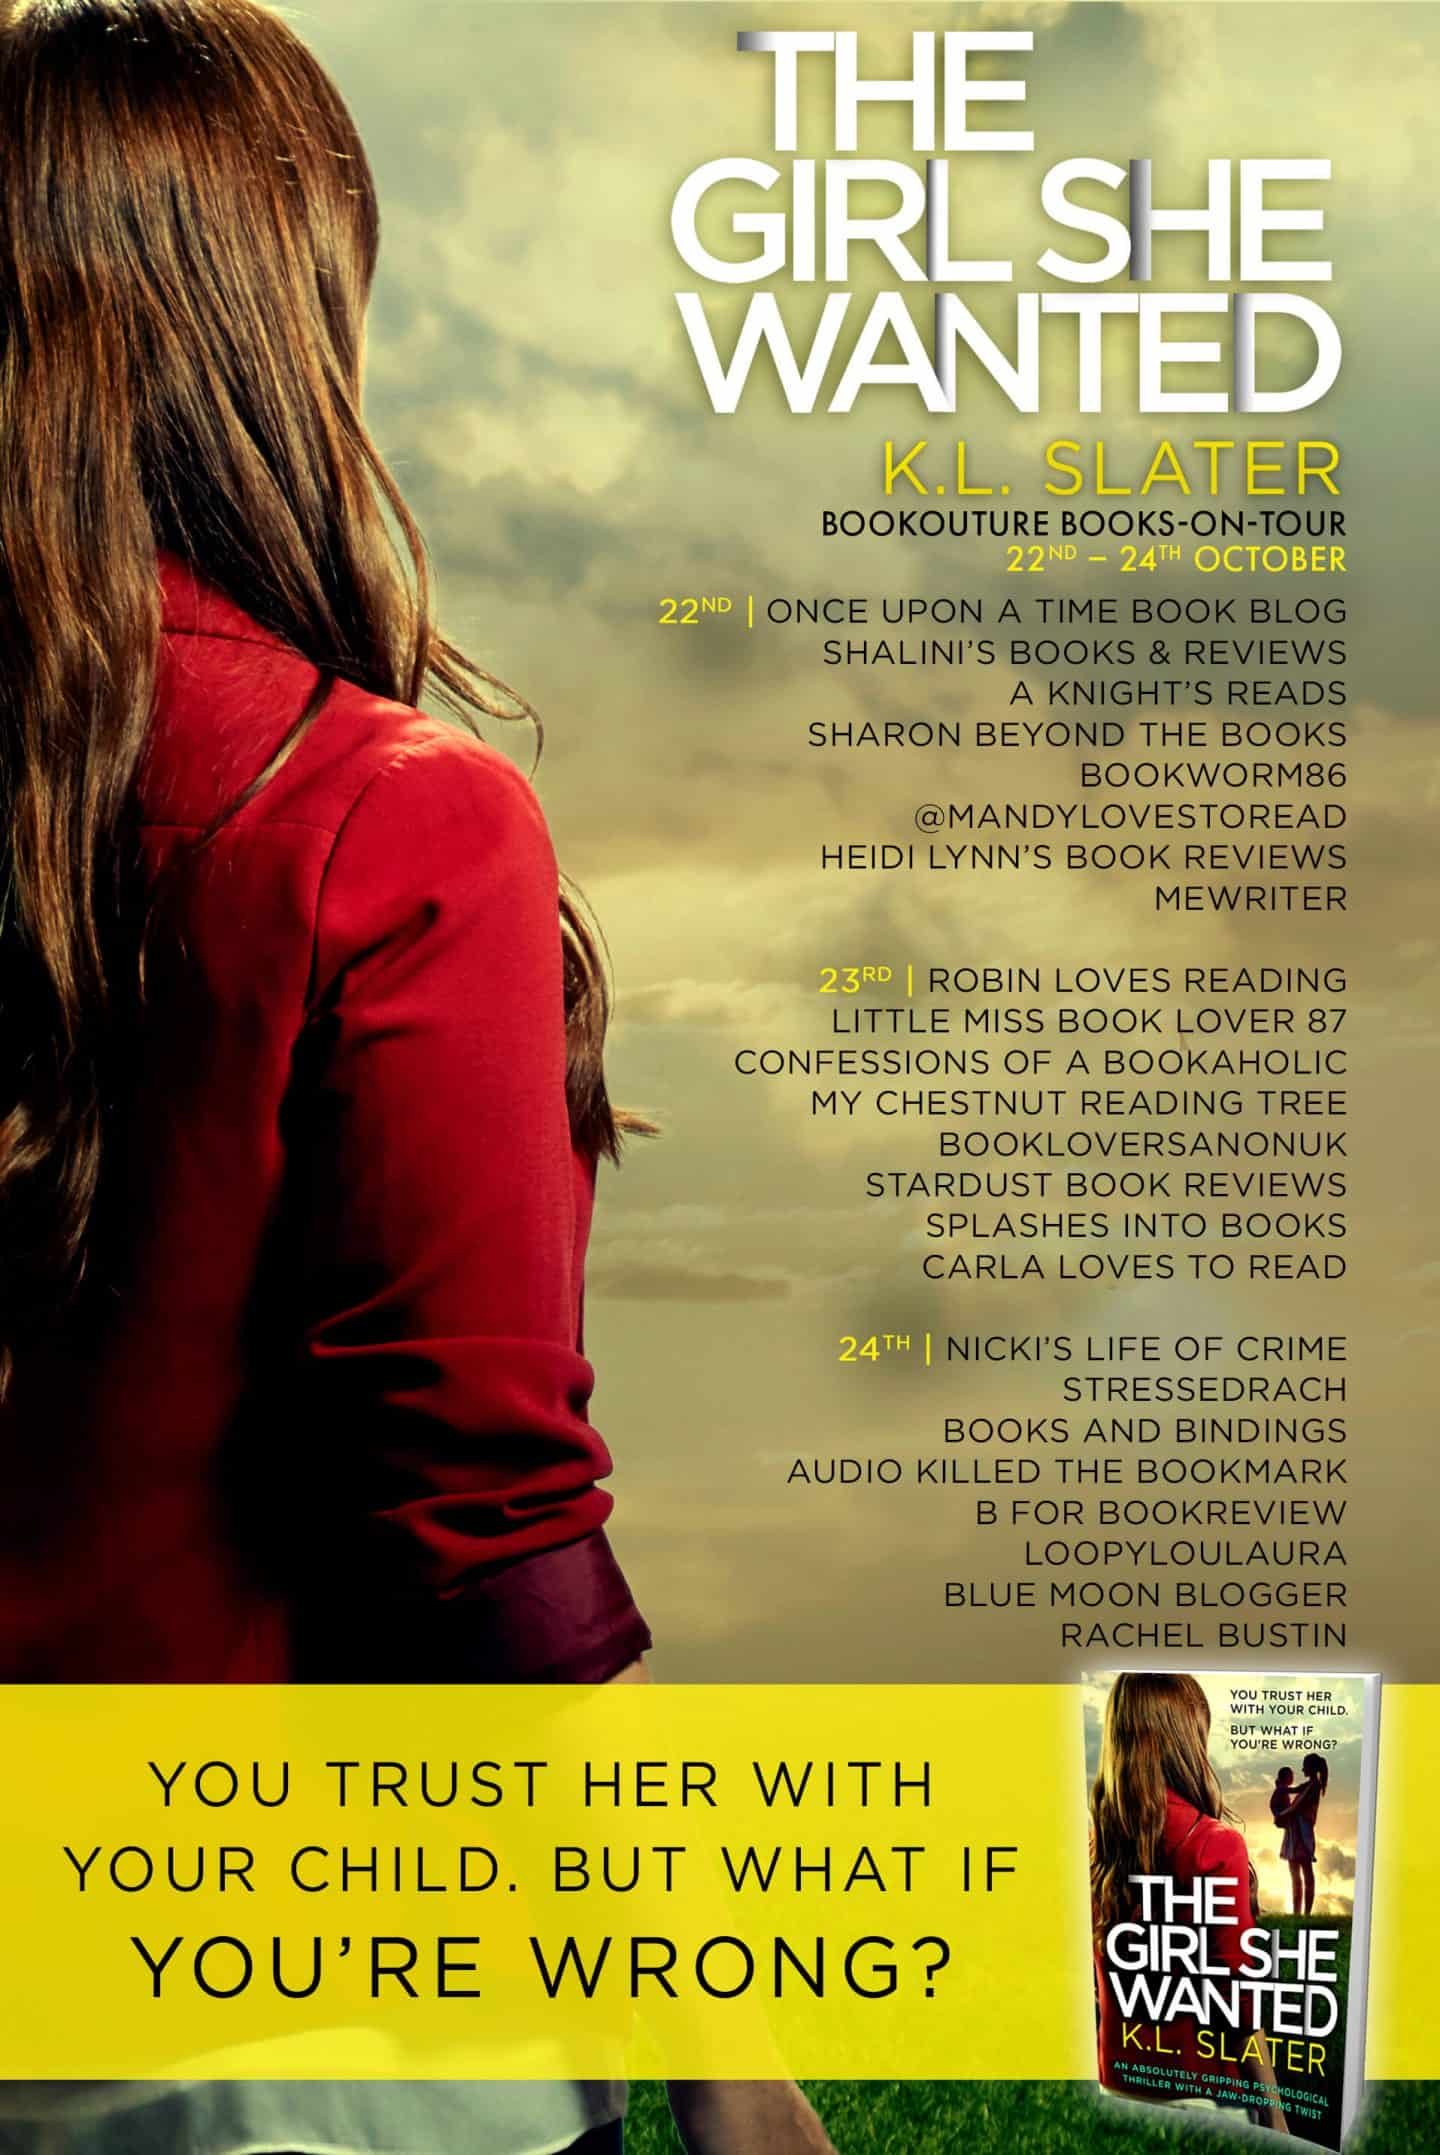 The Girl She Wanted by KL Slater blog tour